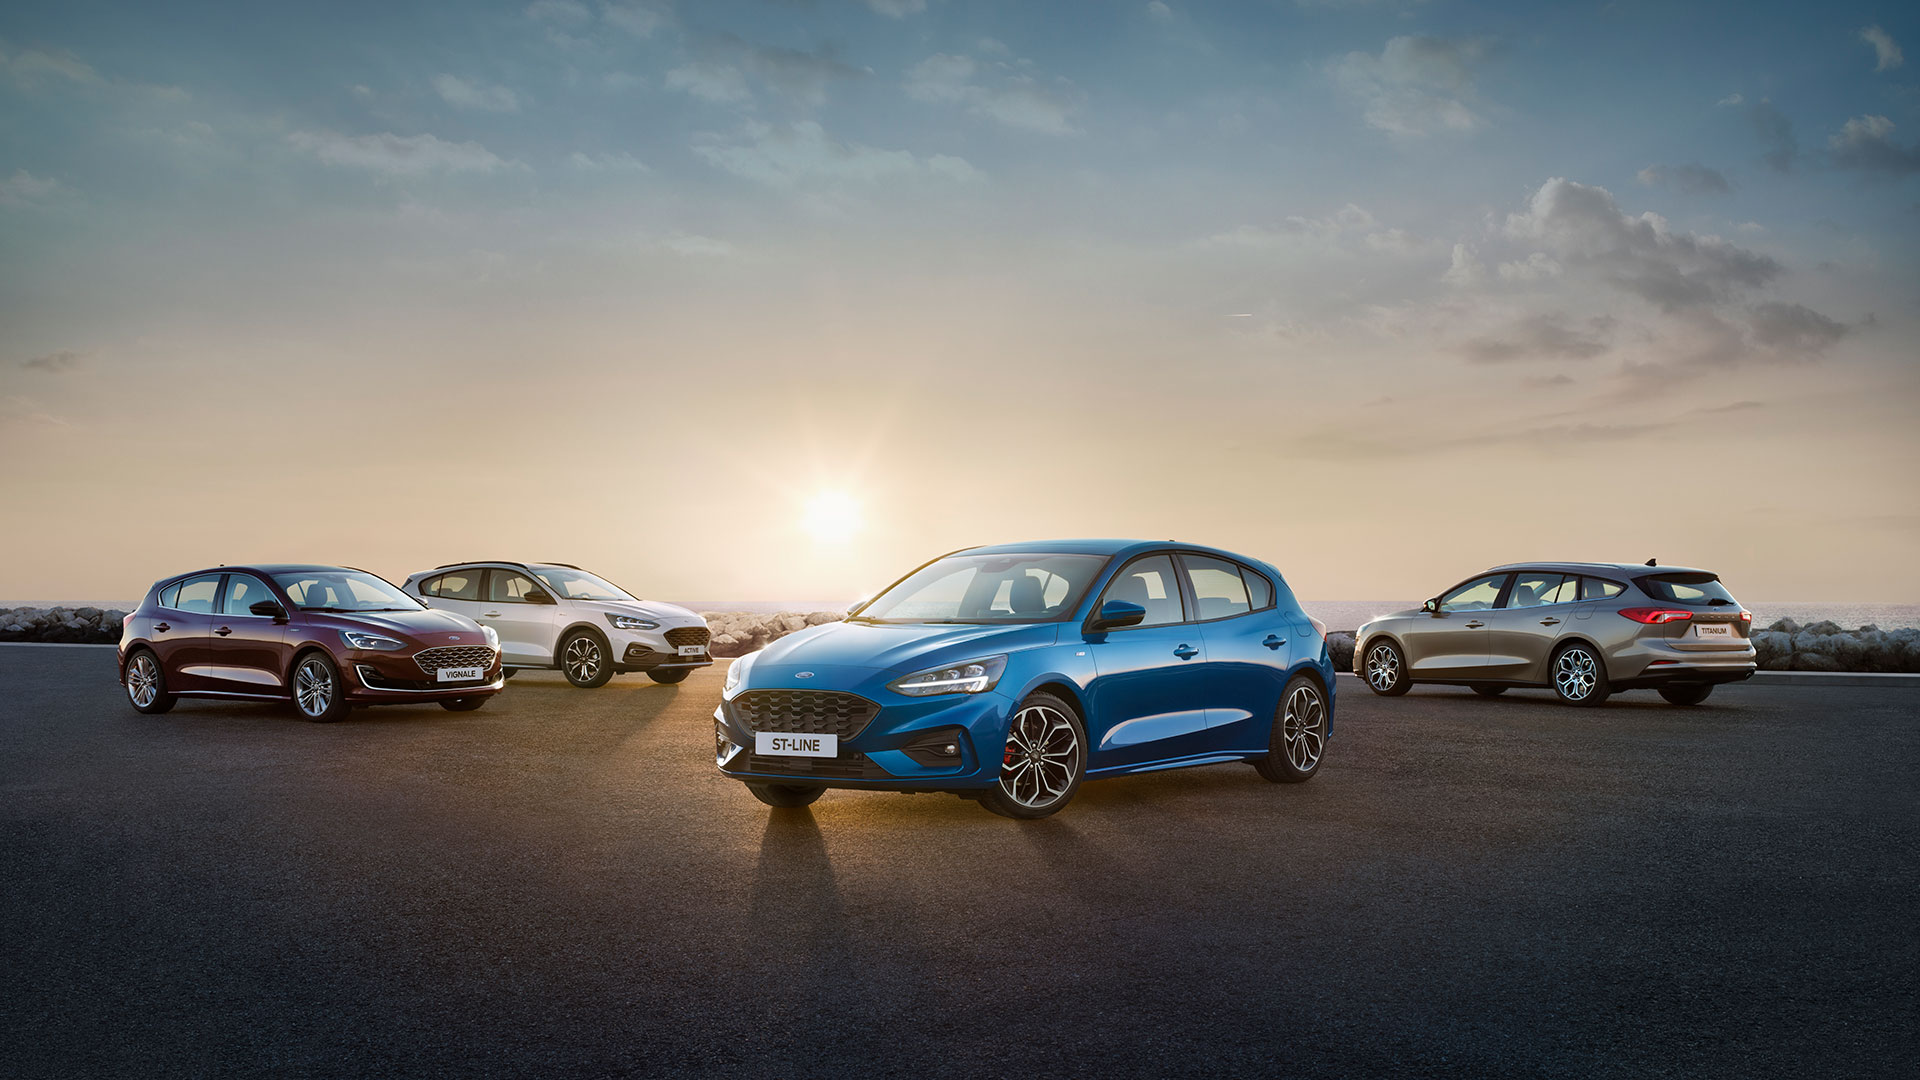 New Ford Focus set to whet appetites ahead of arrival in July